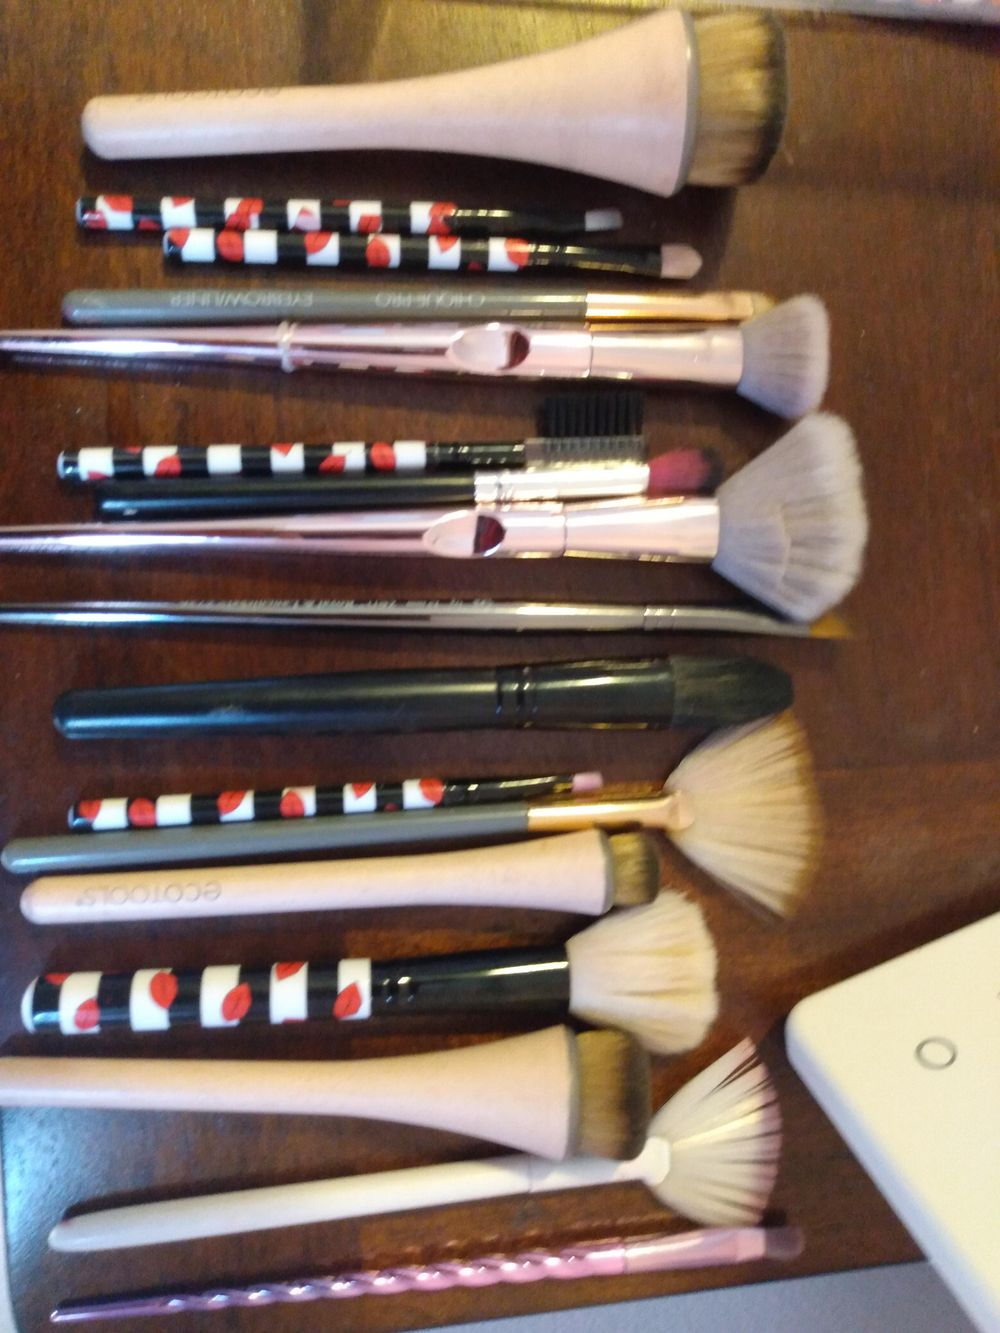 Makeup Brushes Cleaned (Before and After) - image 5 - student project